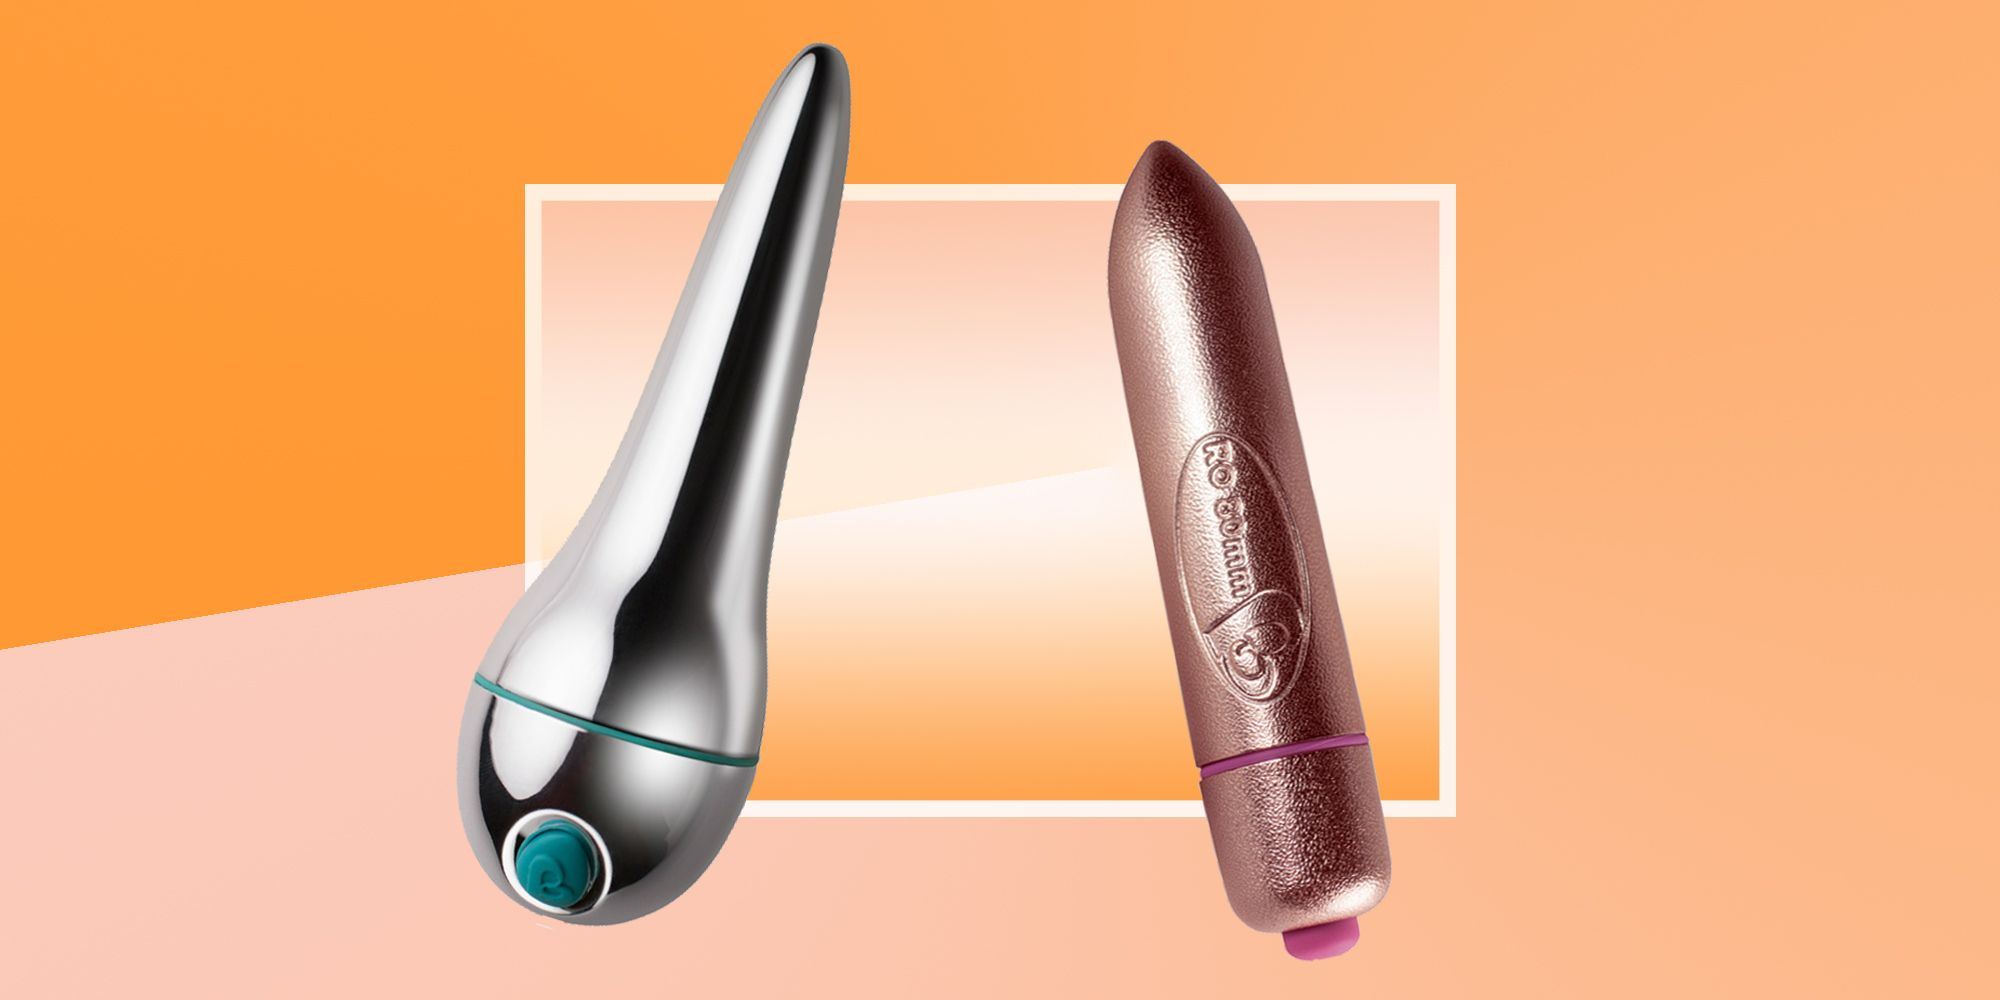 Sainsbury's is now selling sex toys so you can masturbate well for less